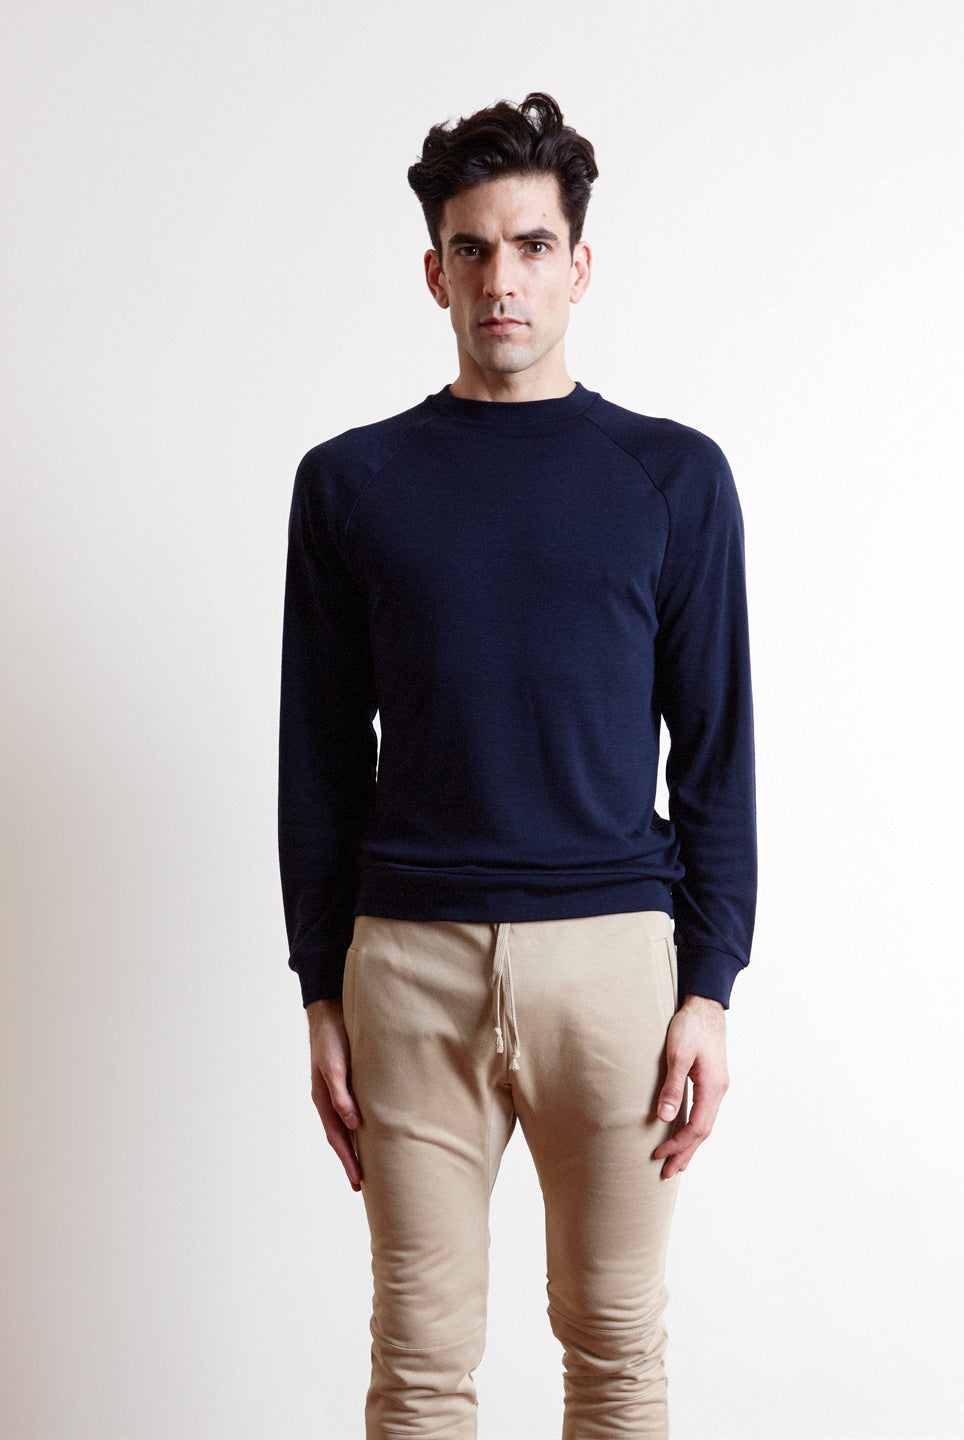 The white briefs sweater made in a fine merino wool rib